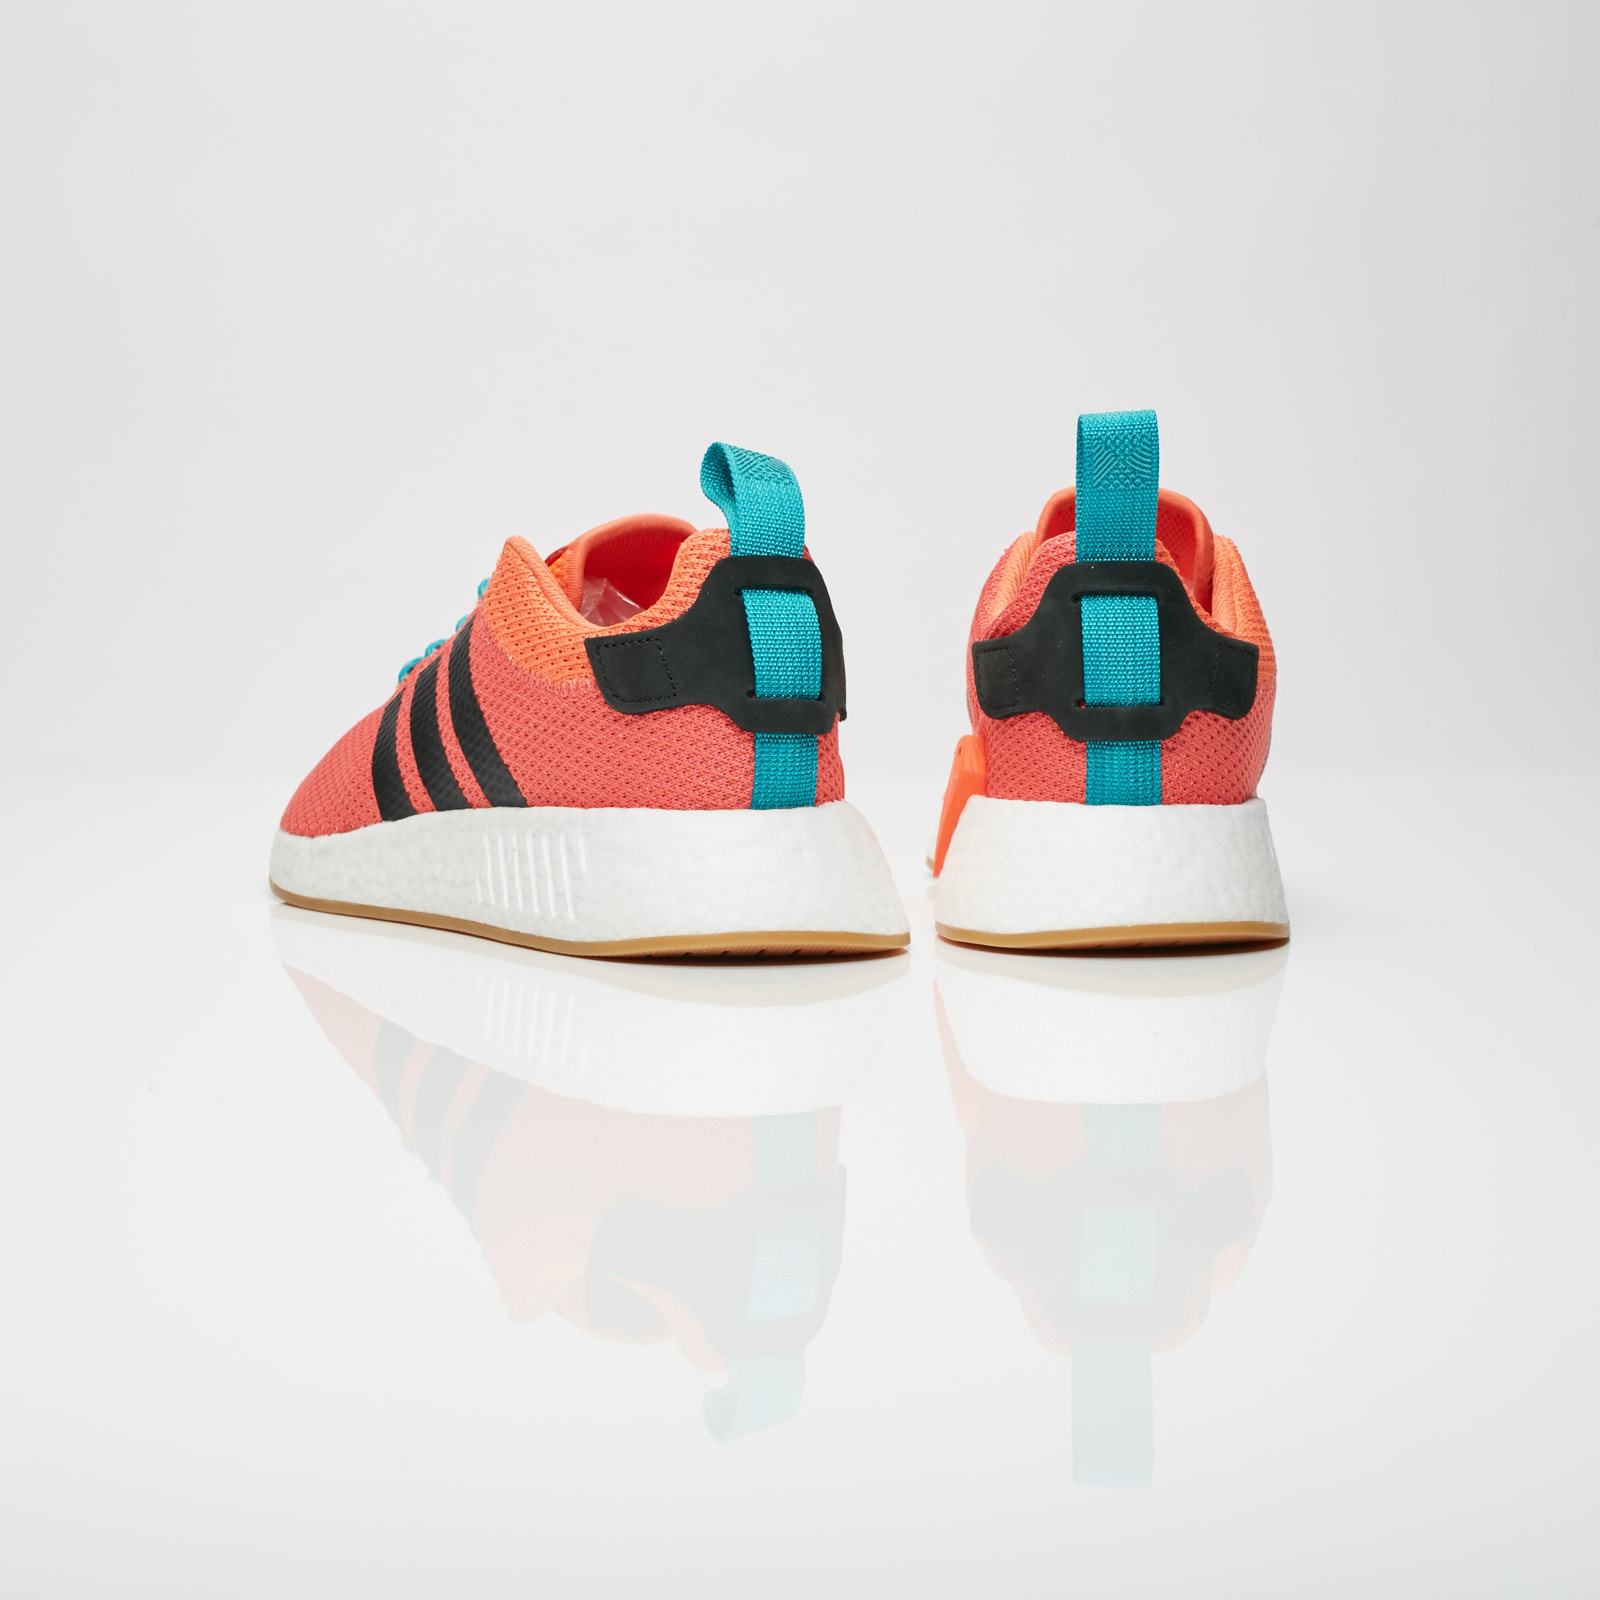 sports shoes e12a8 1aaa7 adidas NMD R2 Summer - Cq3081 - Sneakersnstuff   sneakers   streetwear  online since 1999